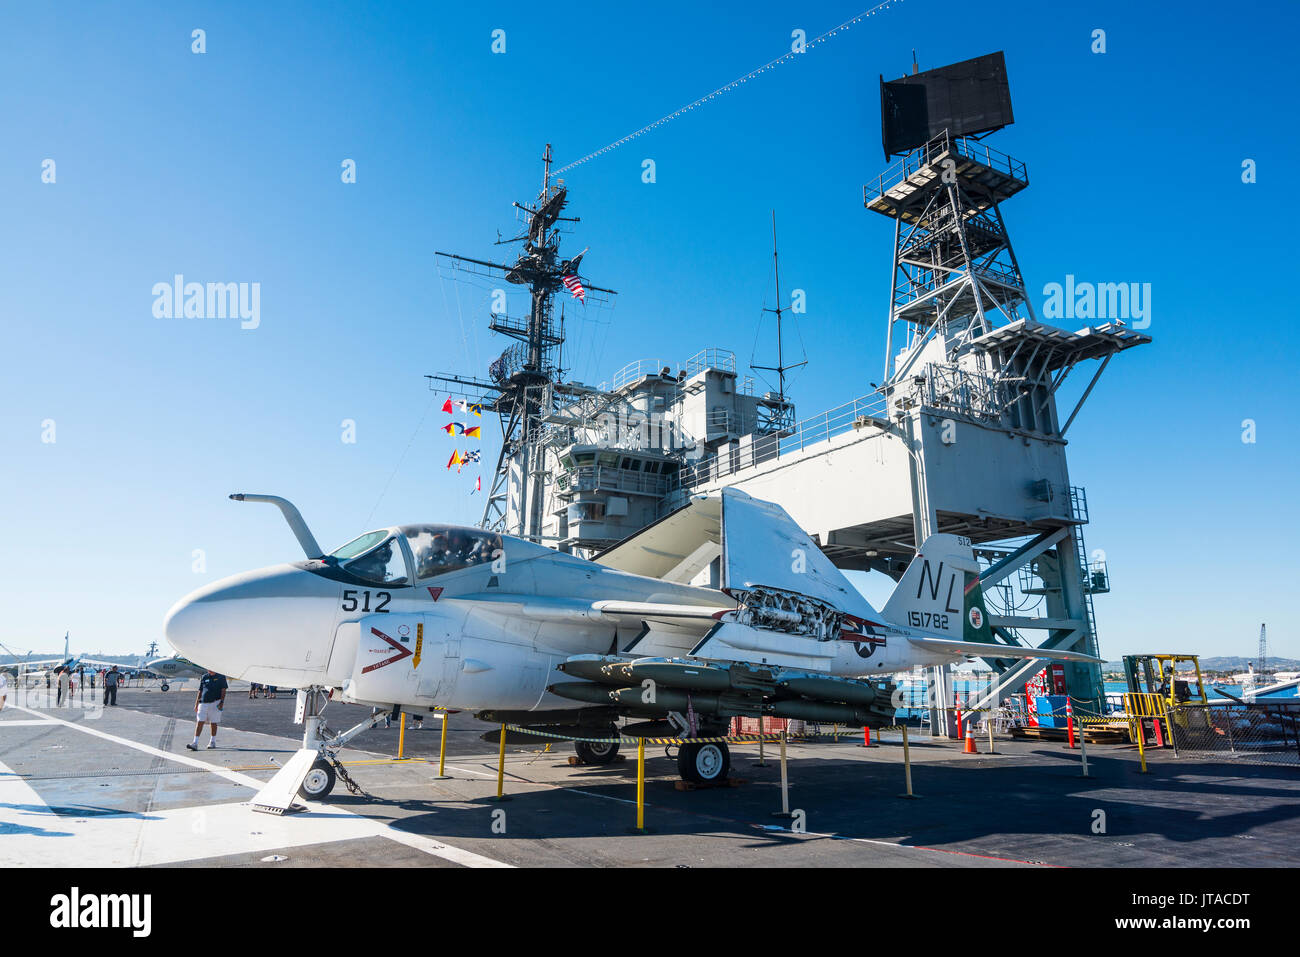 Fighter jet on deck of the USS Midway Museum, San Diego, California, United States of America, North America - Stock Image